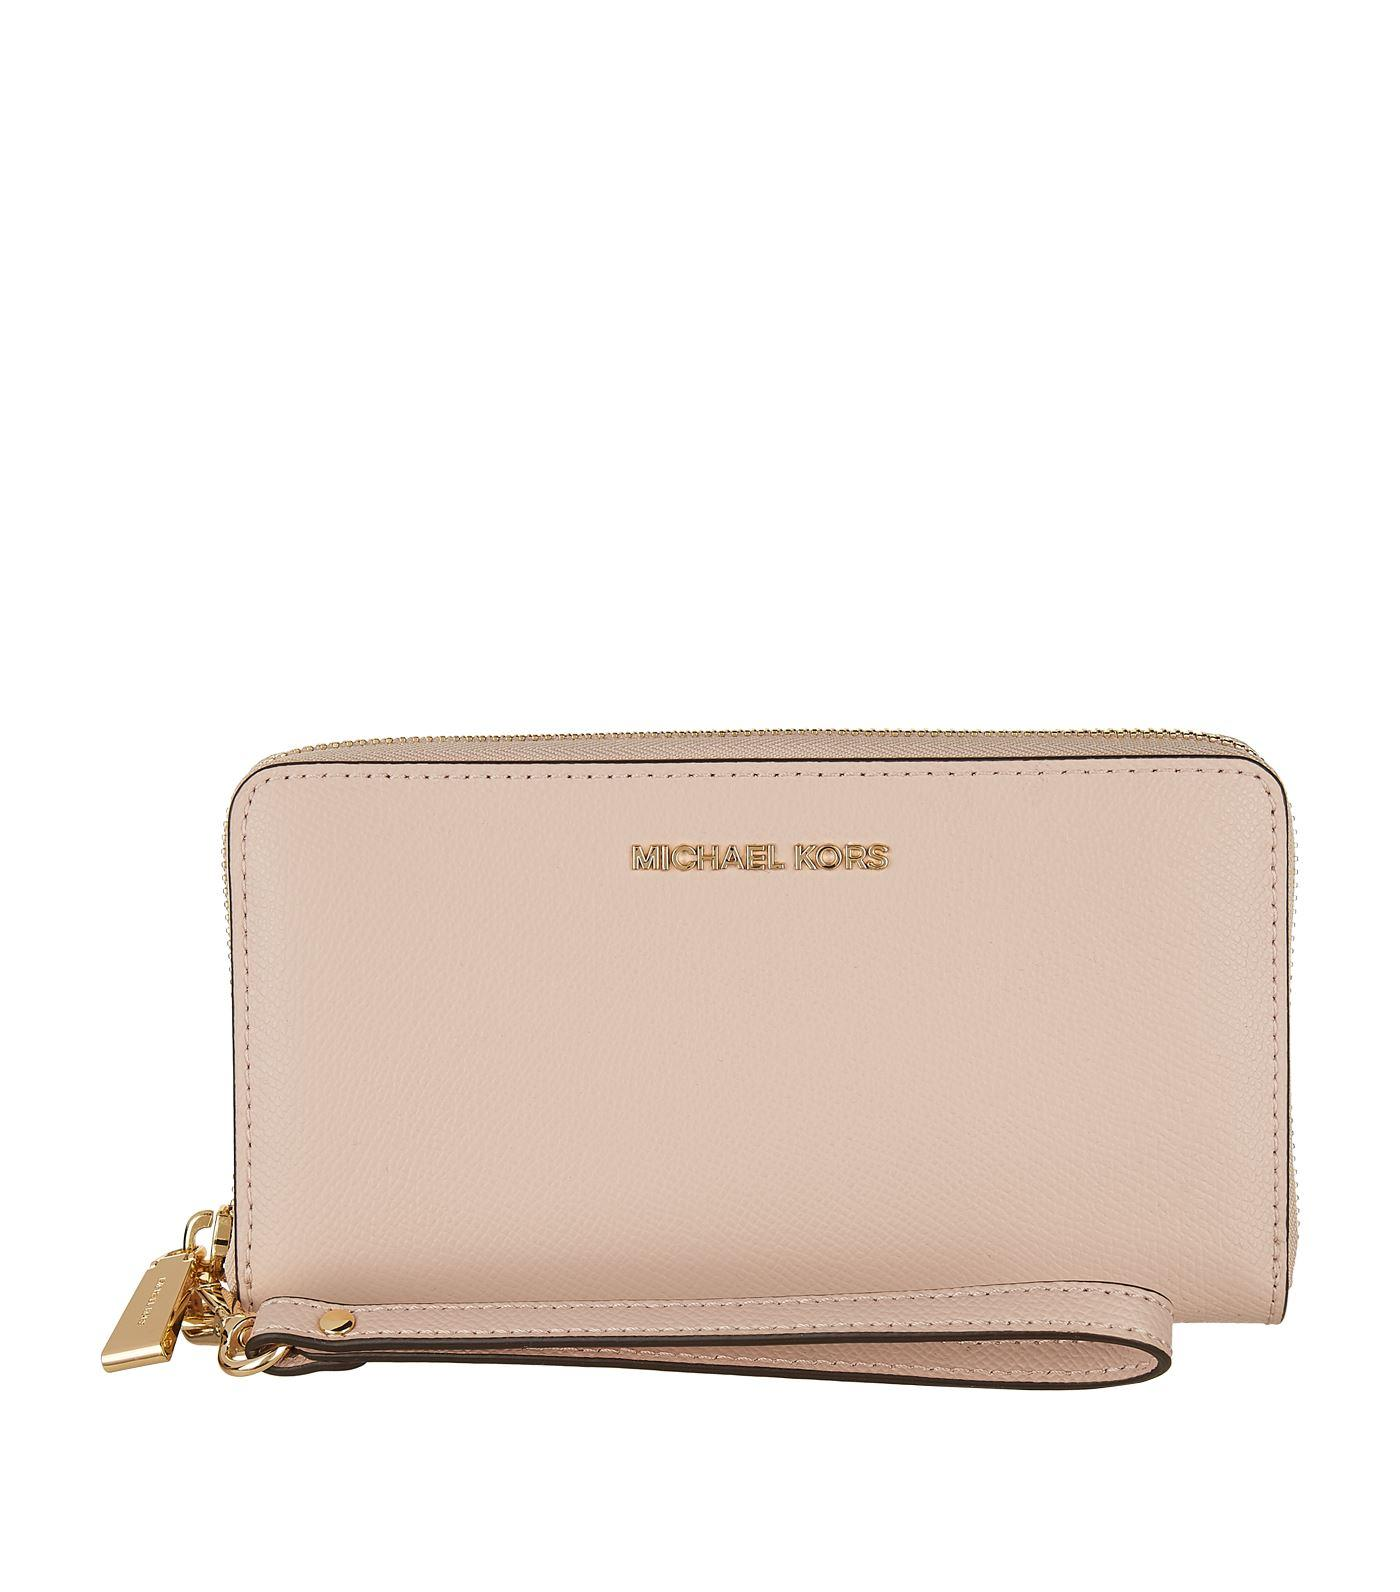 1187a3c5c5a2 Lyst - MICHAEL Michael Kors Leather Wristlet Wallet in Pink - Save ...